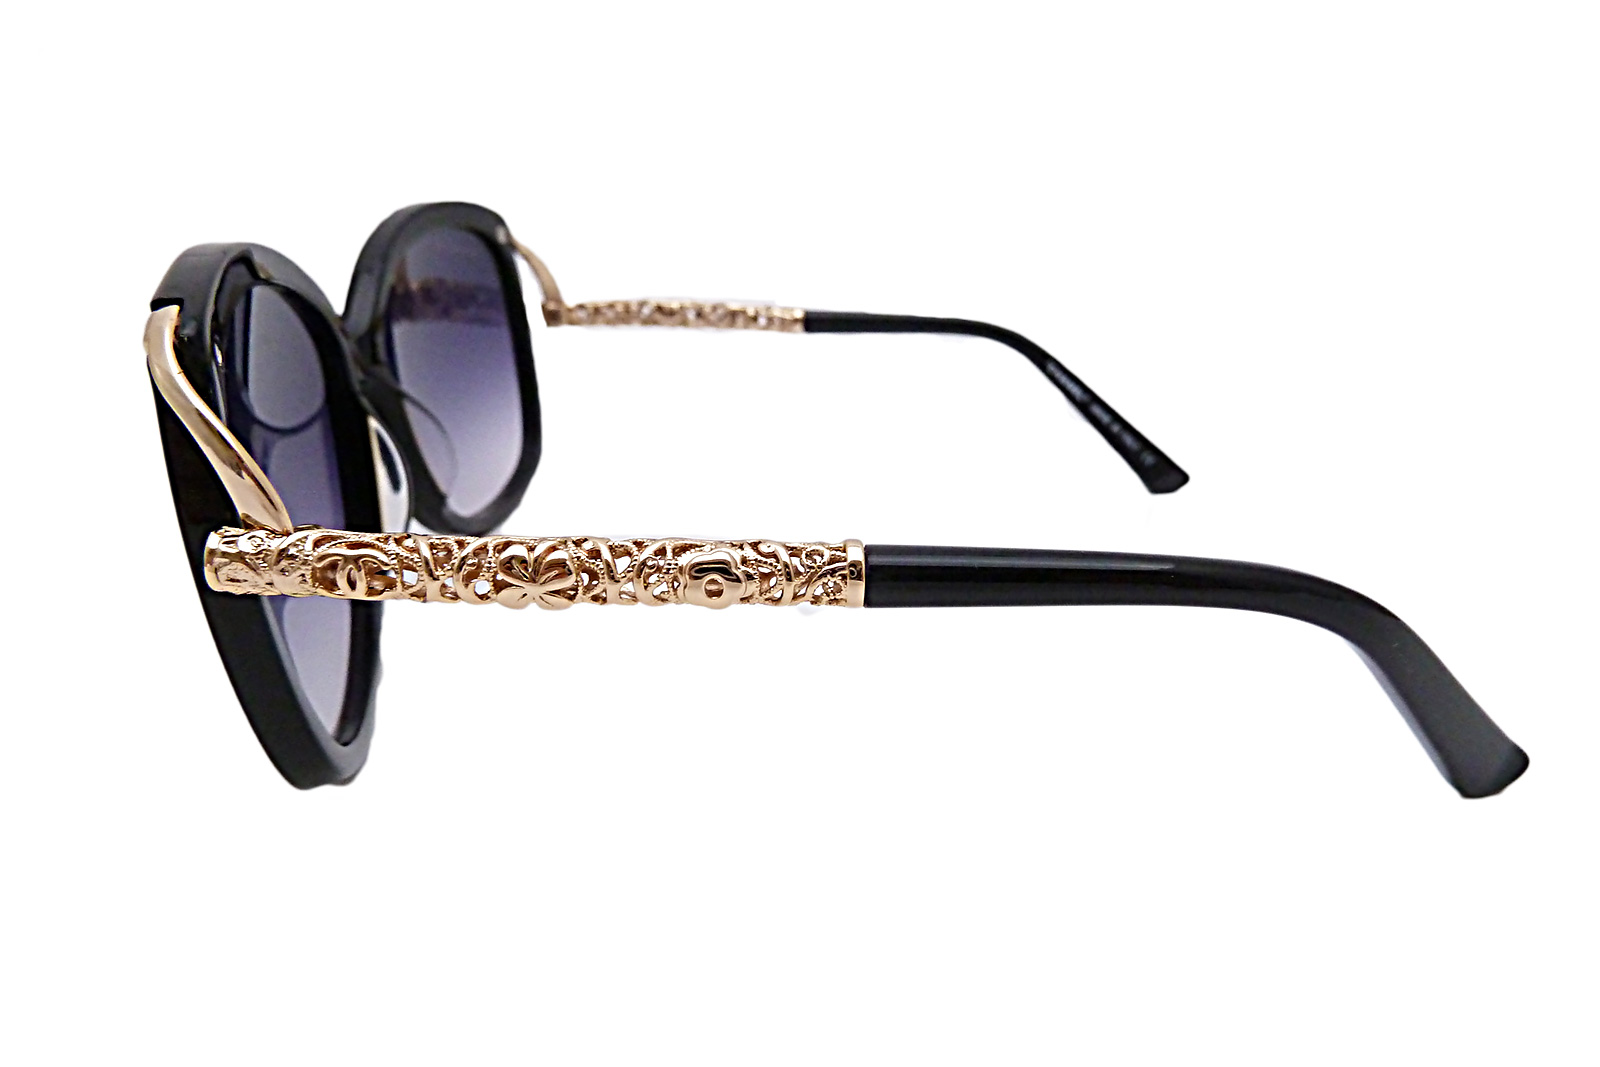 Gold Frame Chanel Sunglasses : Auth Chanel CC Logo Sunglasses Black Pink Gold Frame ...